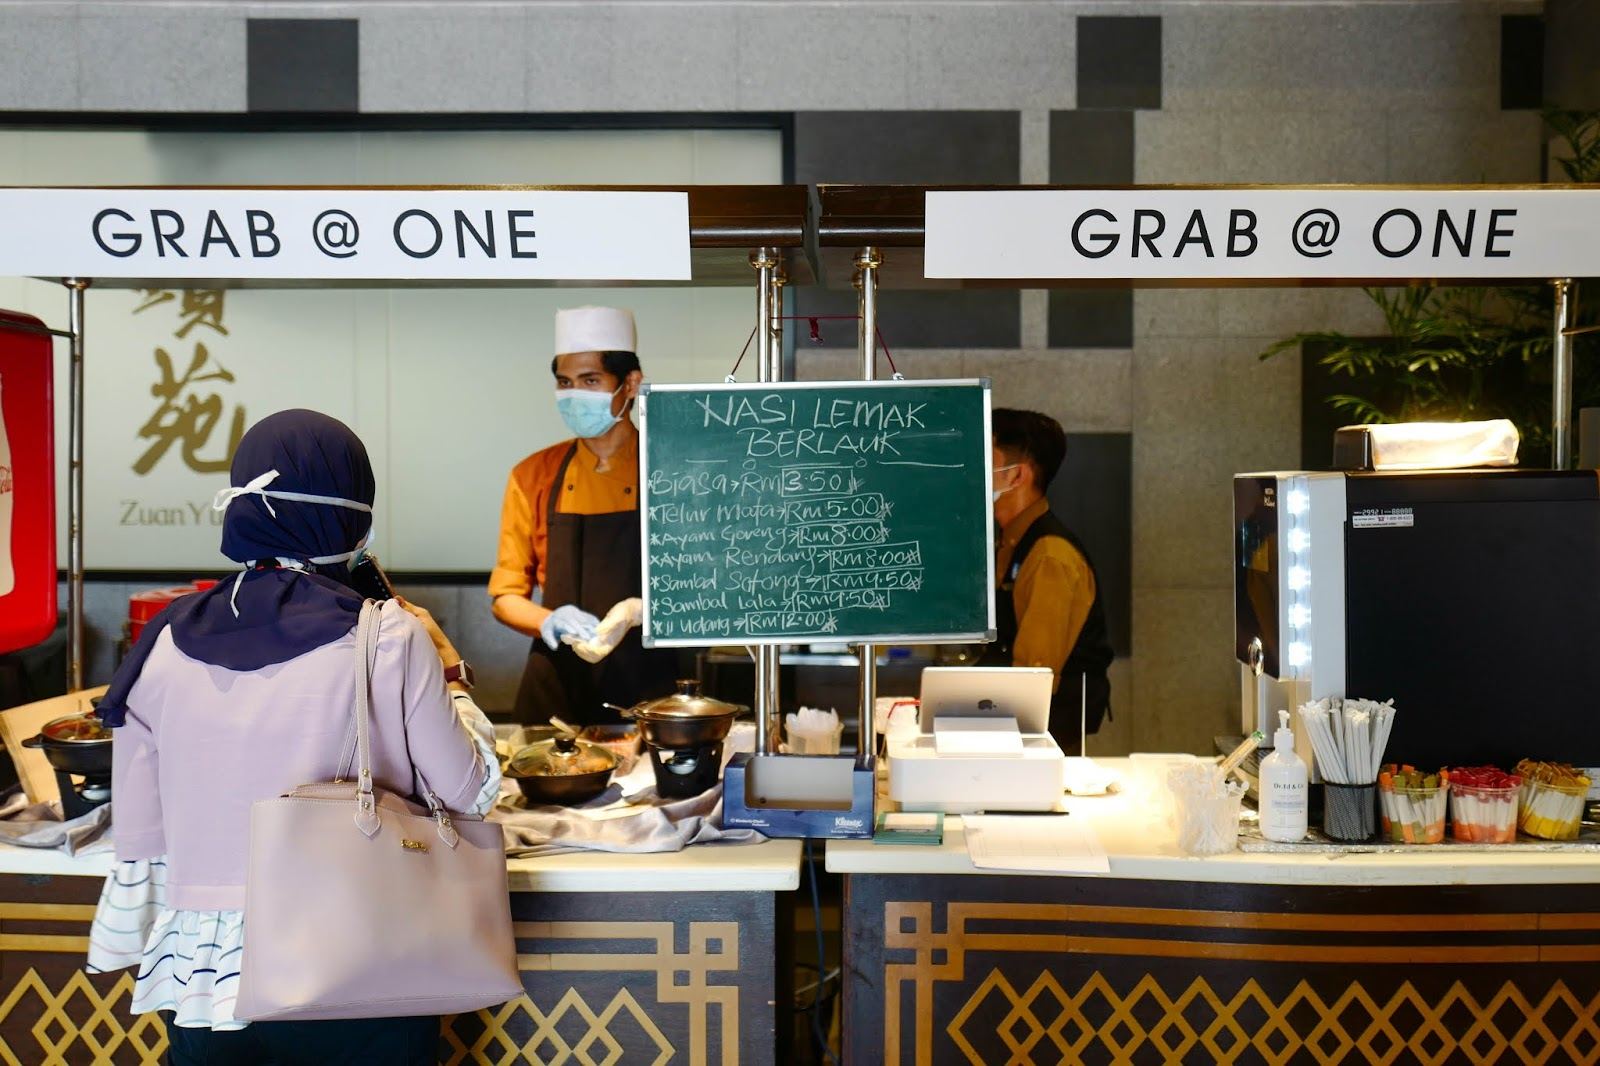 One World Hotel Petaling Jaya: Transforming bustling buffets into tempting takeouts